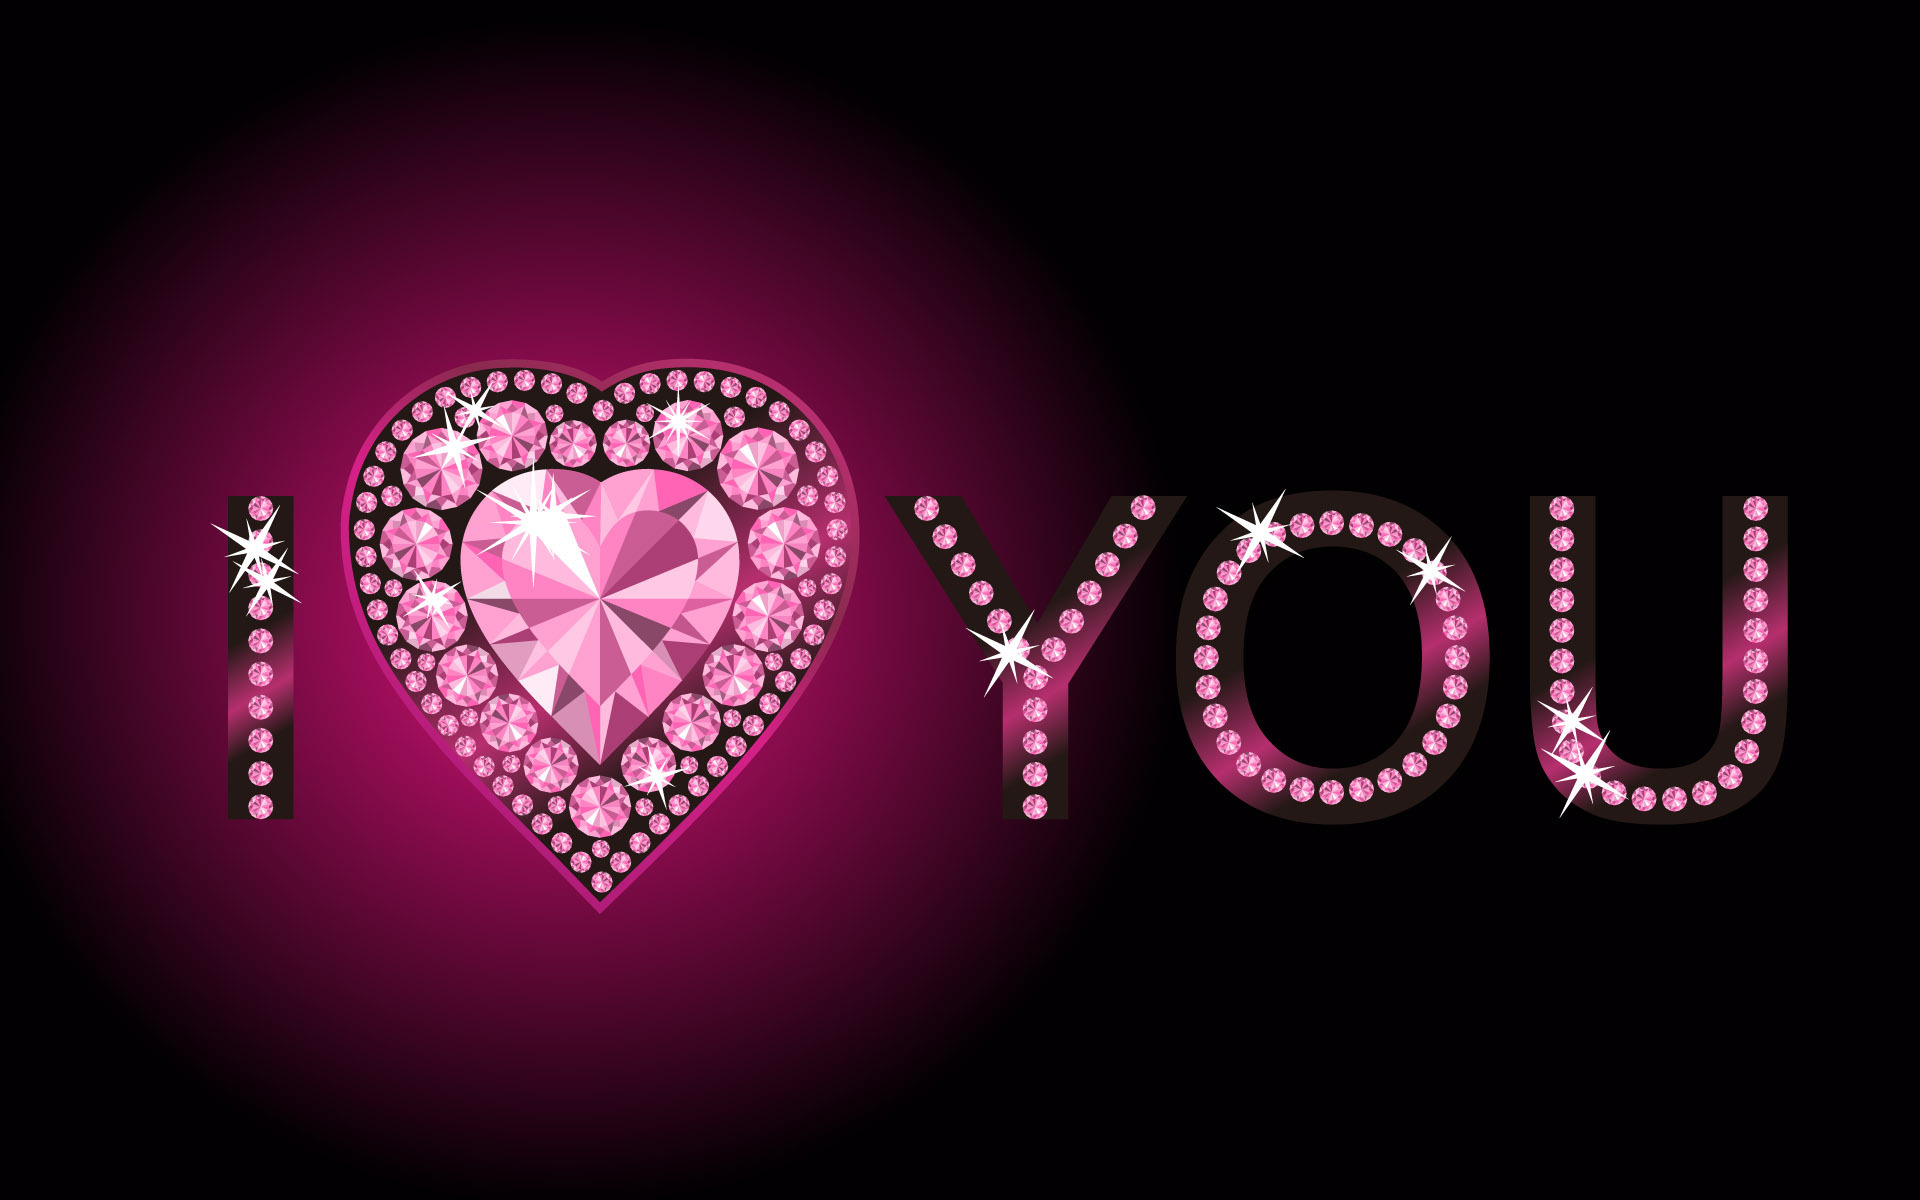 Love Wallpapers Wallpapers High Quality Download Free